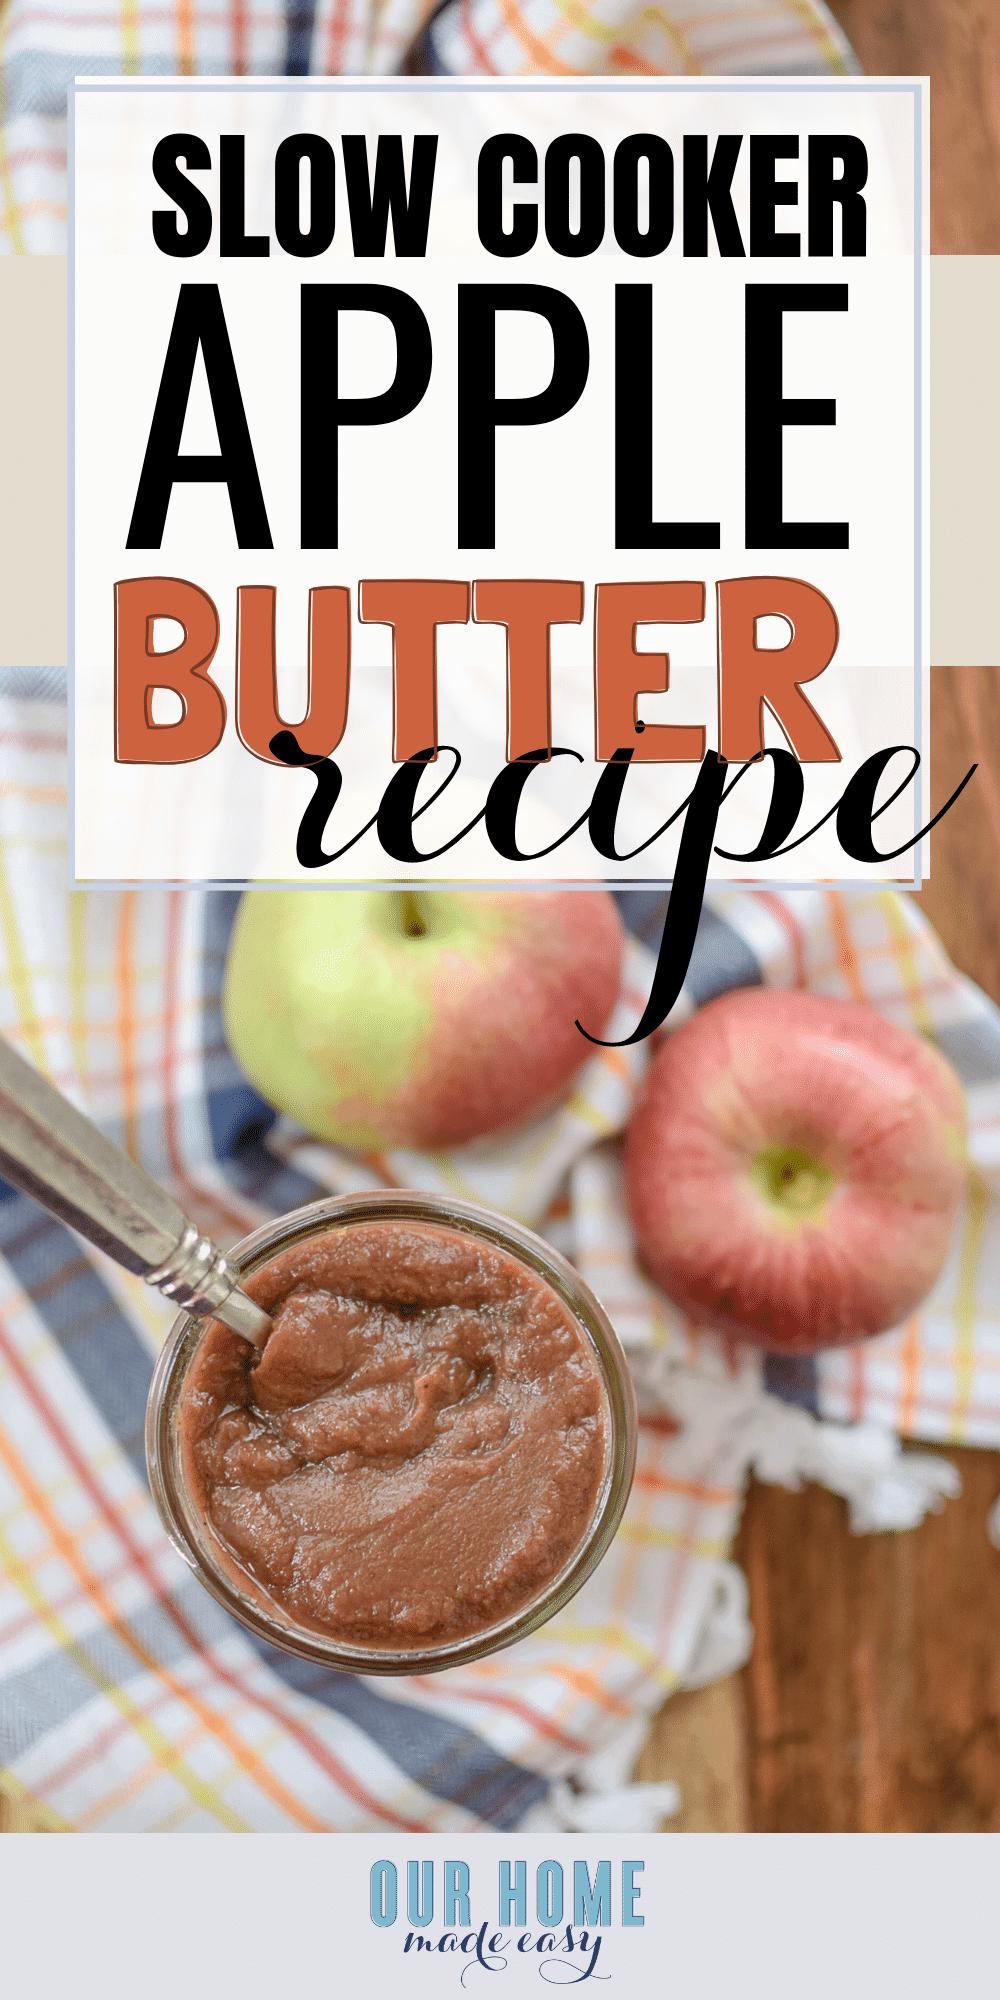 Make this easy crock pot apple butter with just a few ingredients! Use up any apples for this delicious apple butter recipe. Click for the recipe! #applebutter #fallrecipes #apple #breakfast #recipes #slowcooker